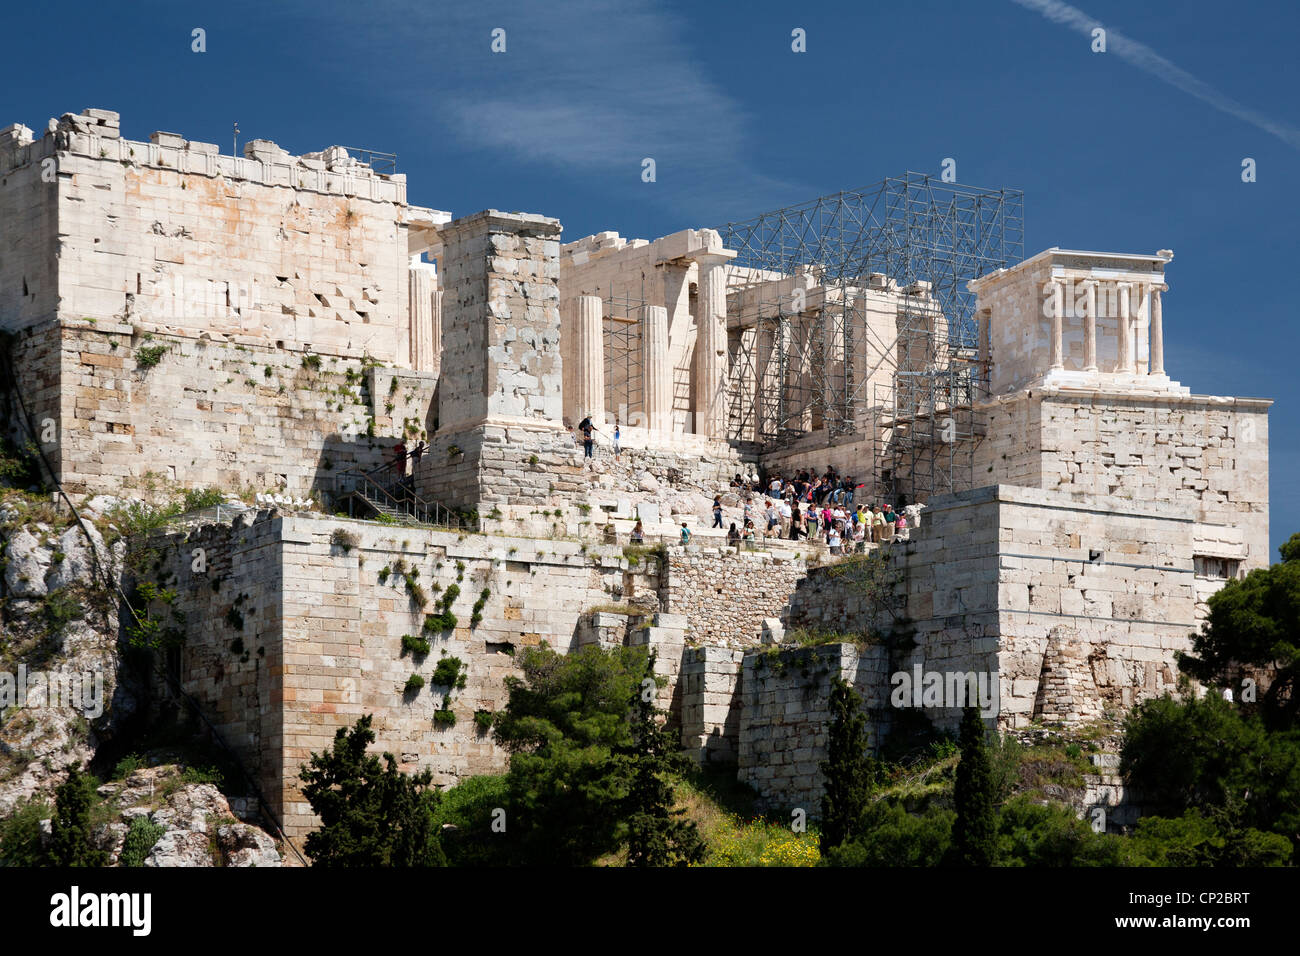 Acropolis of Athens view from Areopagus hill. Athens, Greece. Stock Photo